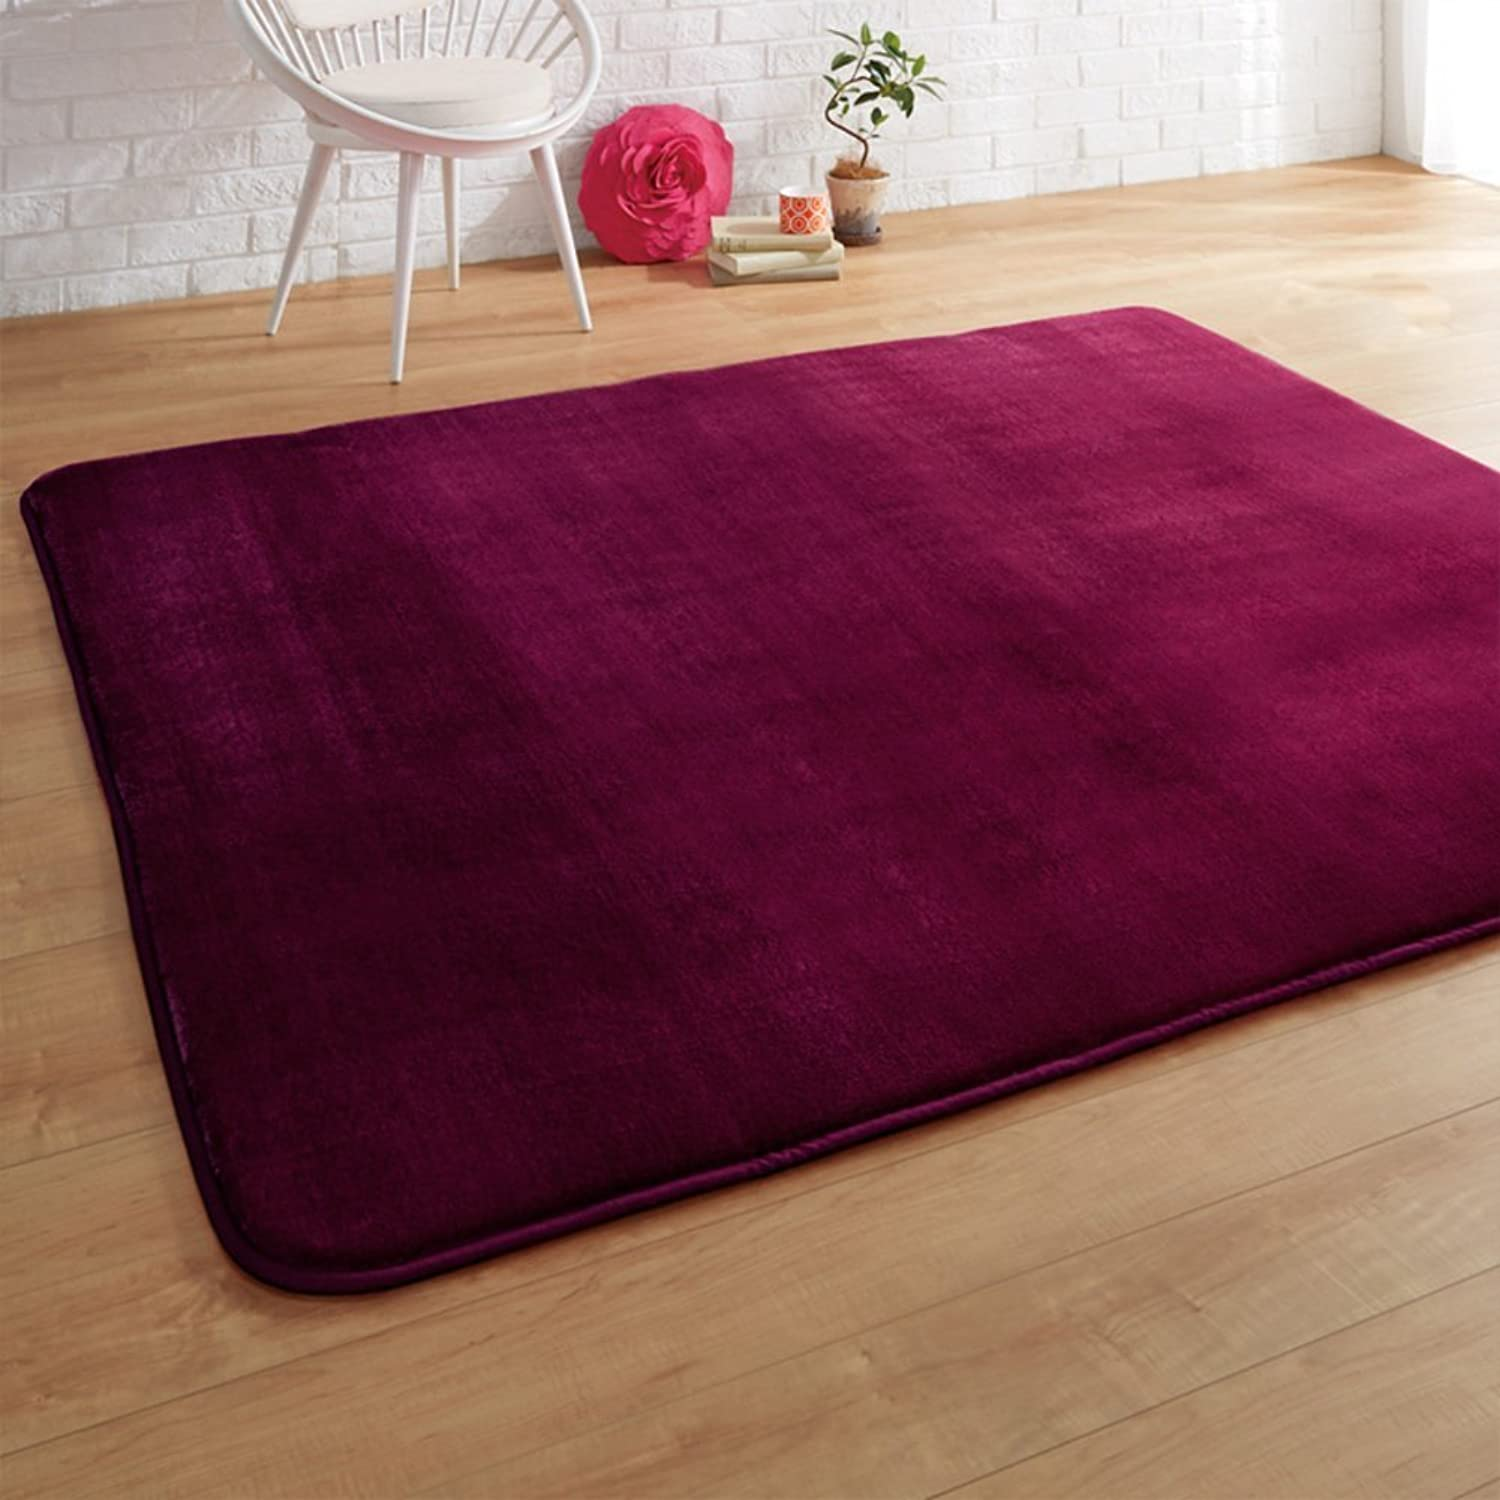 DIDIDD Thick Warm Smooth Door Mats Floor Mat Coffee Table Living Room Bedroom Antilip Door Mats